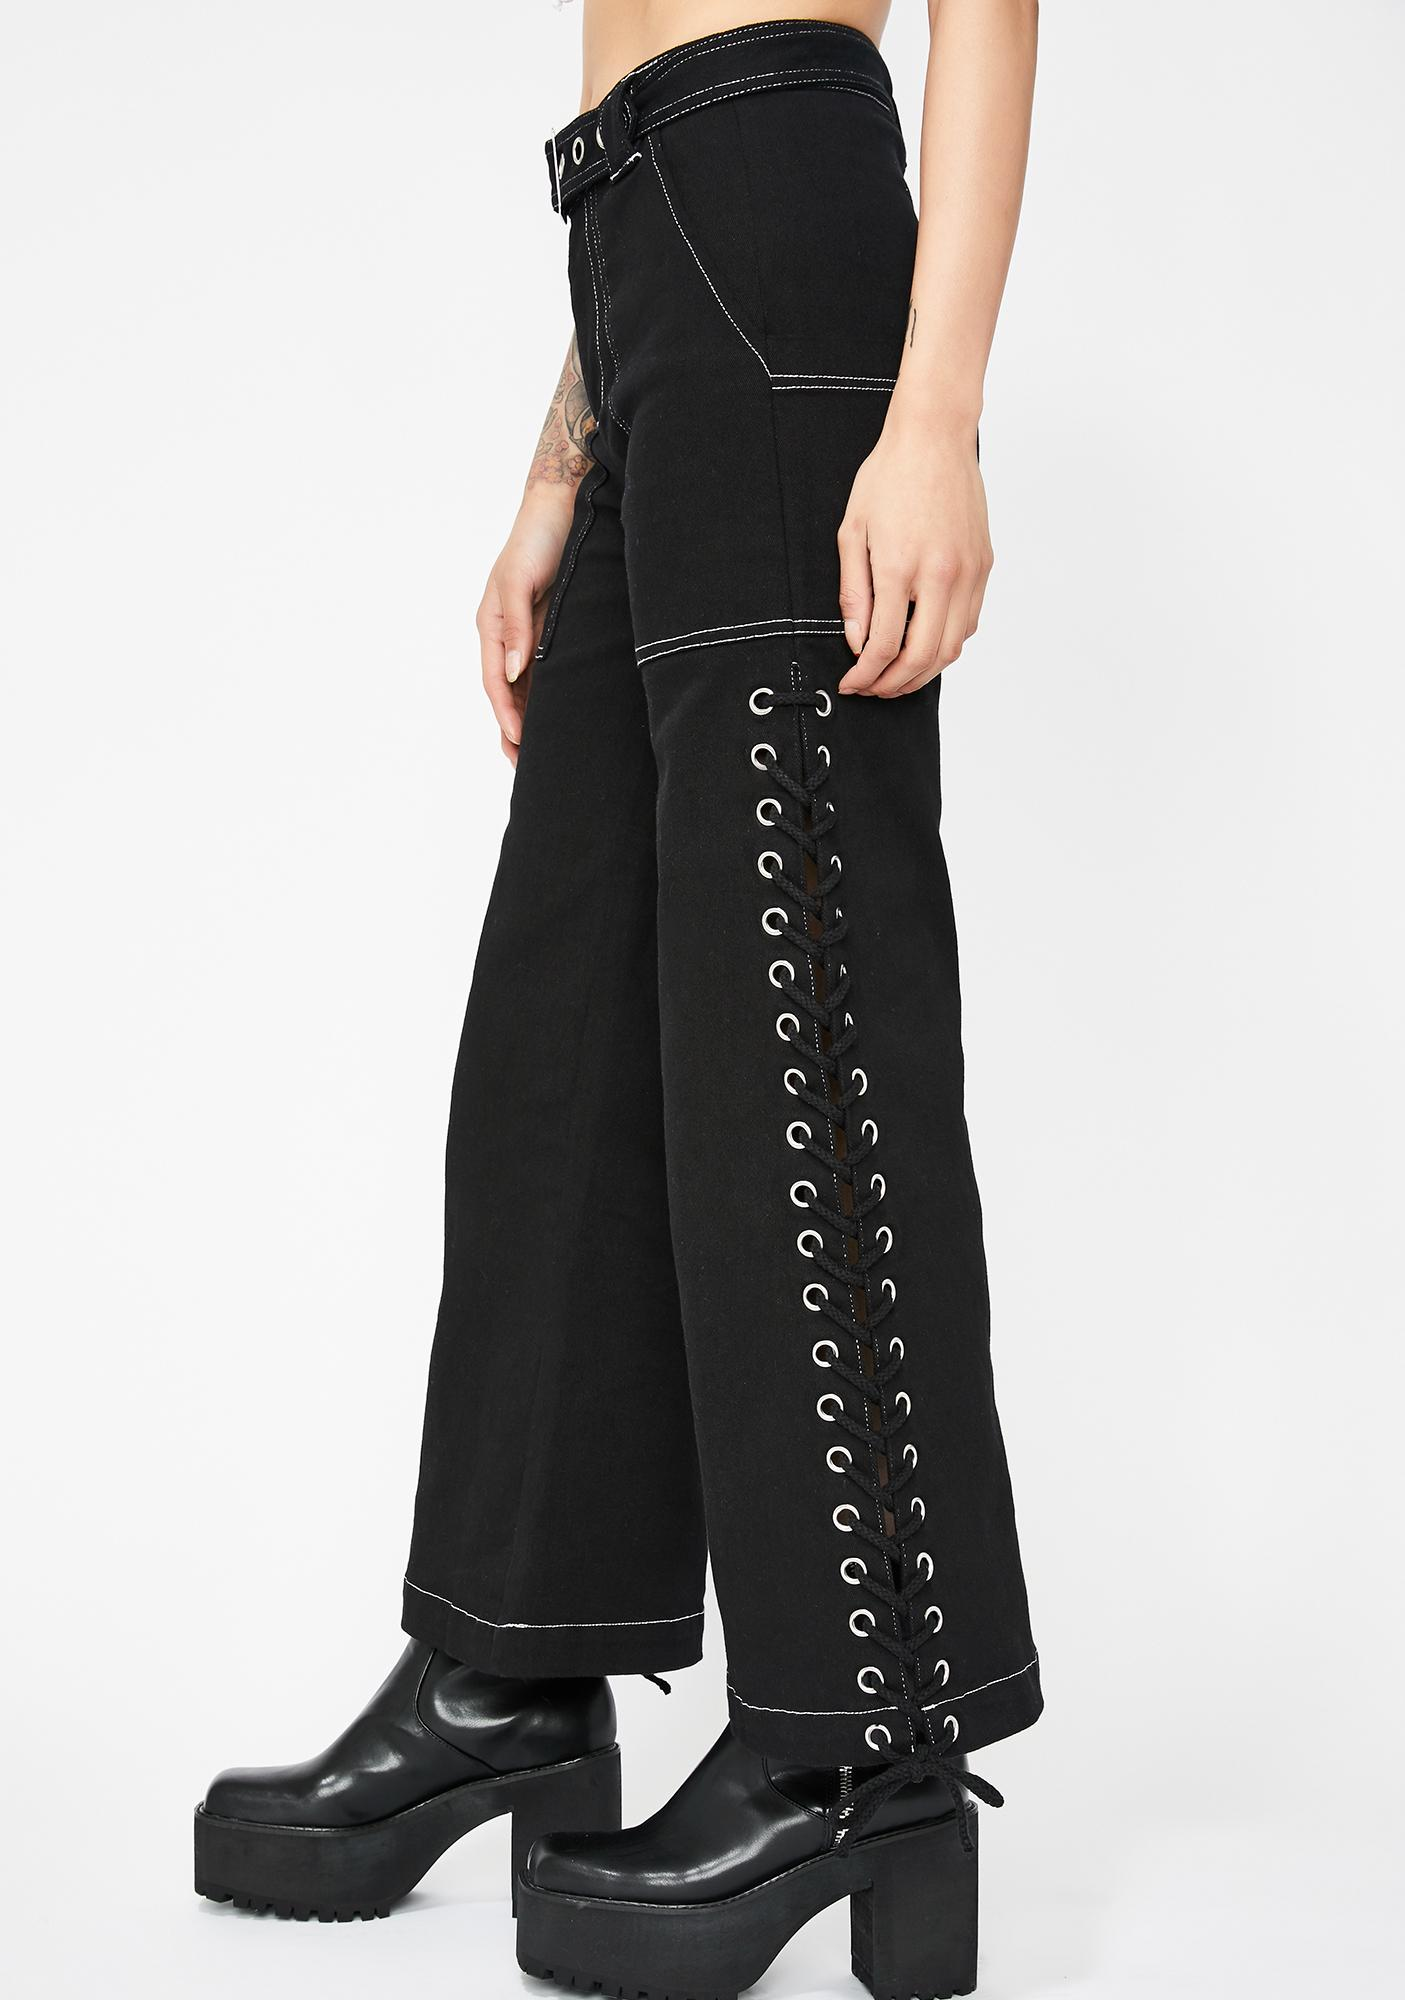 Current Mood Street Drifter Lace-Up Pants